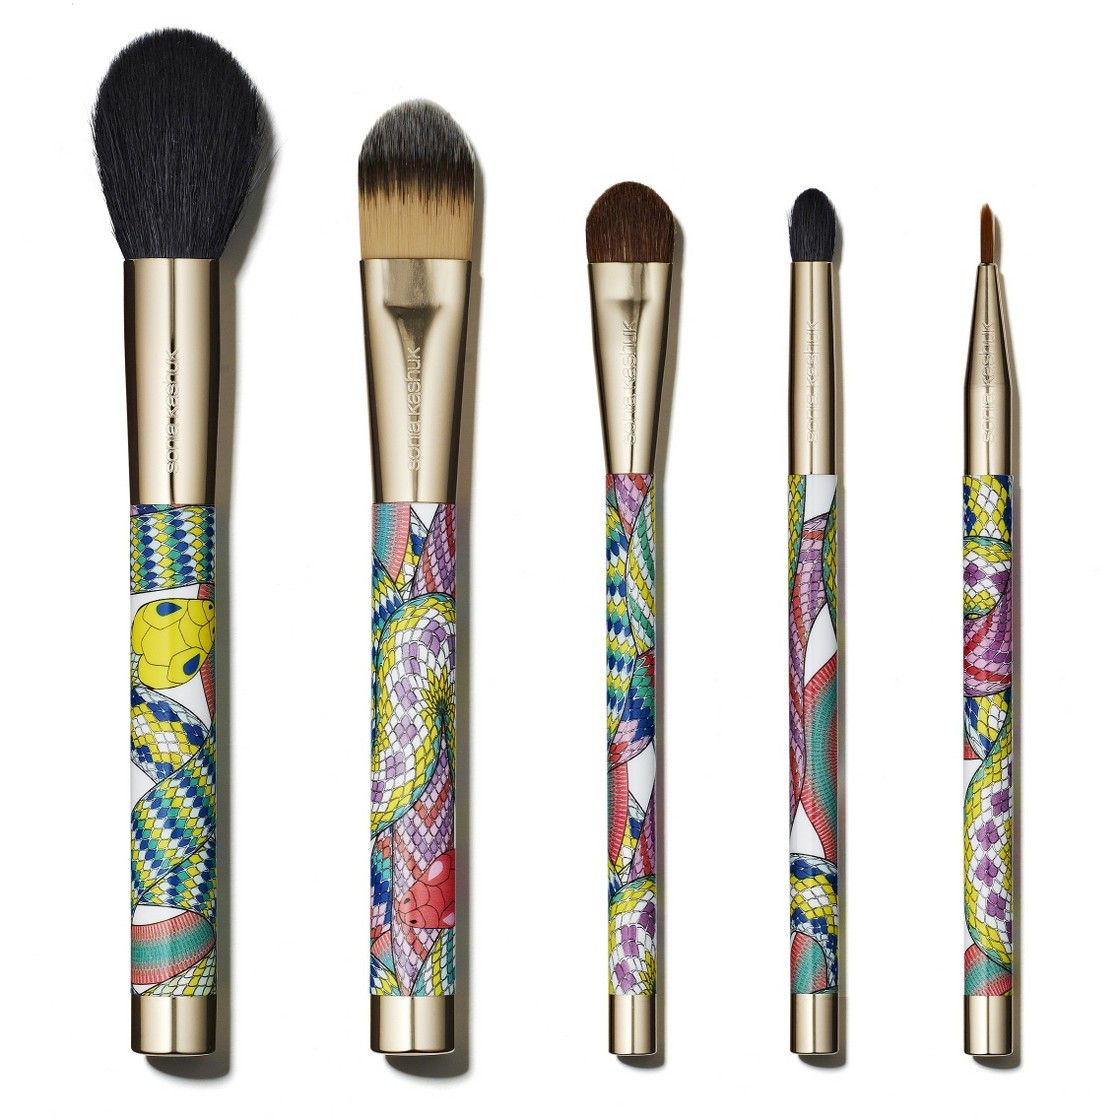 Sonia Kashuk Brush Couture 5 Piece Brush Set from Target